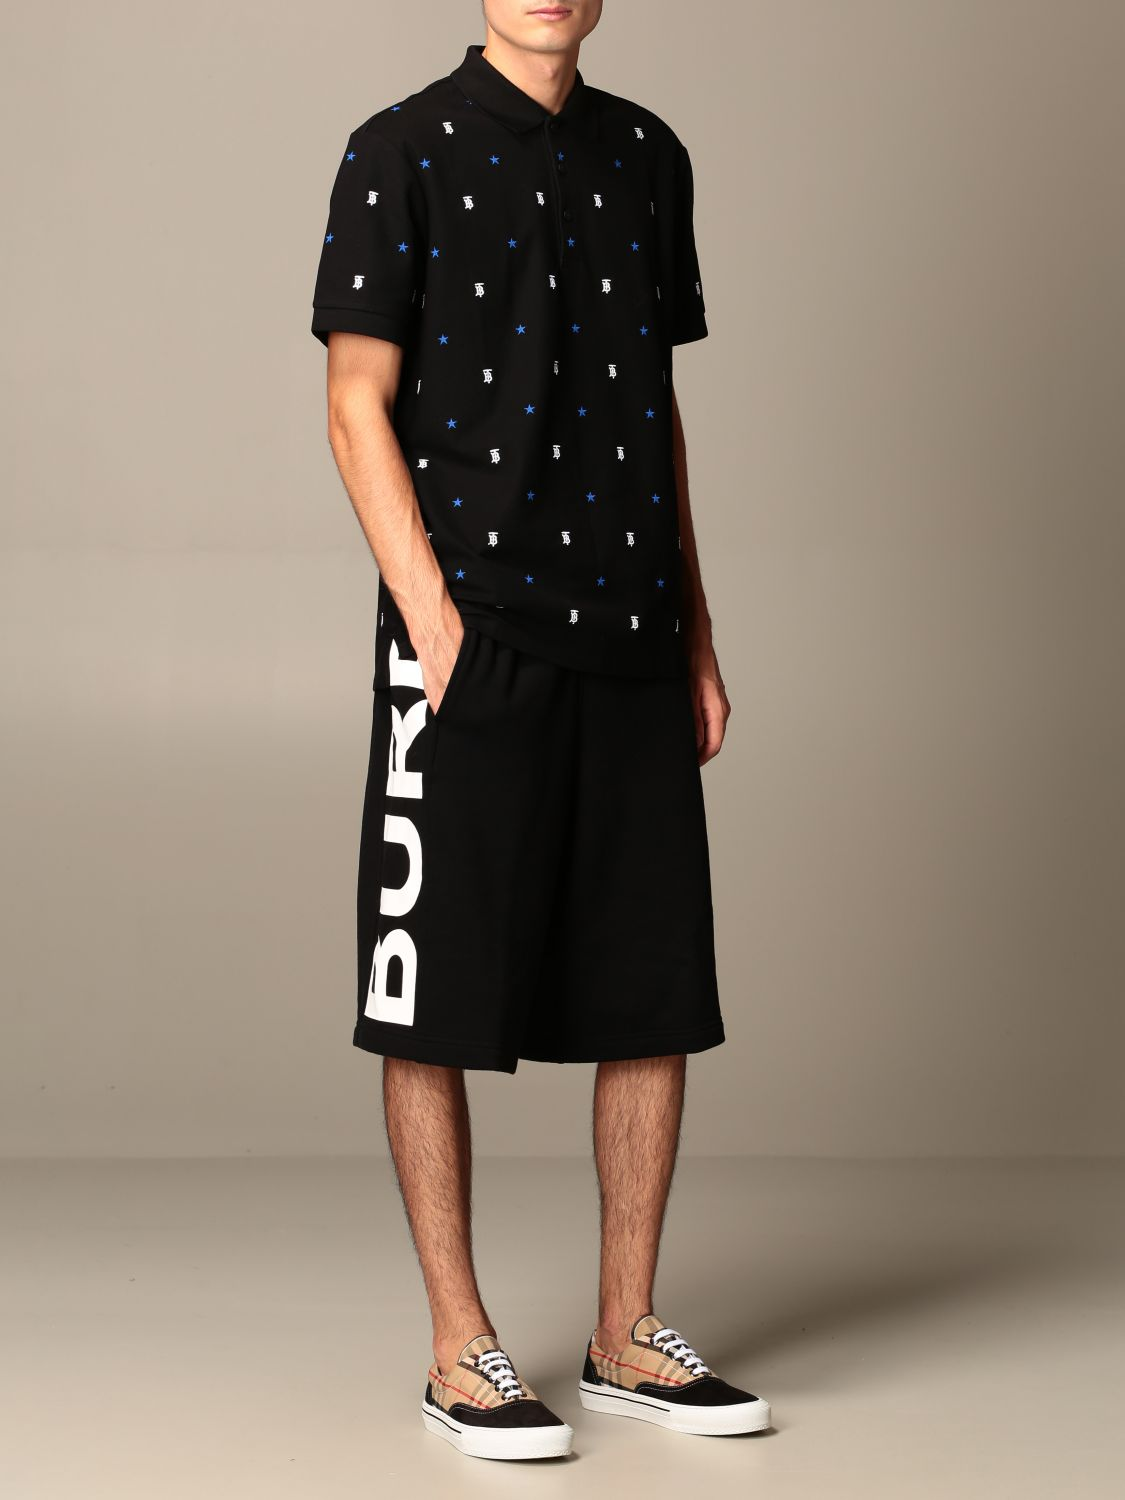 Polo shirt Burberry: Elsford Burberry polo shirt with all-over embroidered TB and star logo black 2